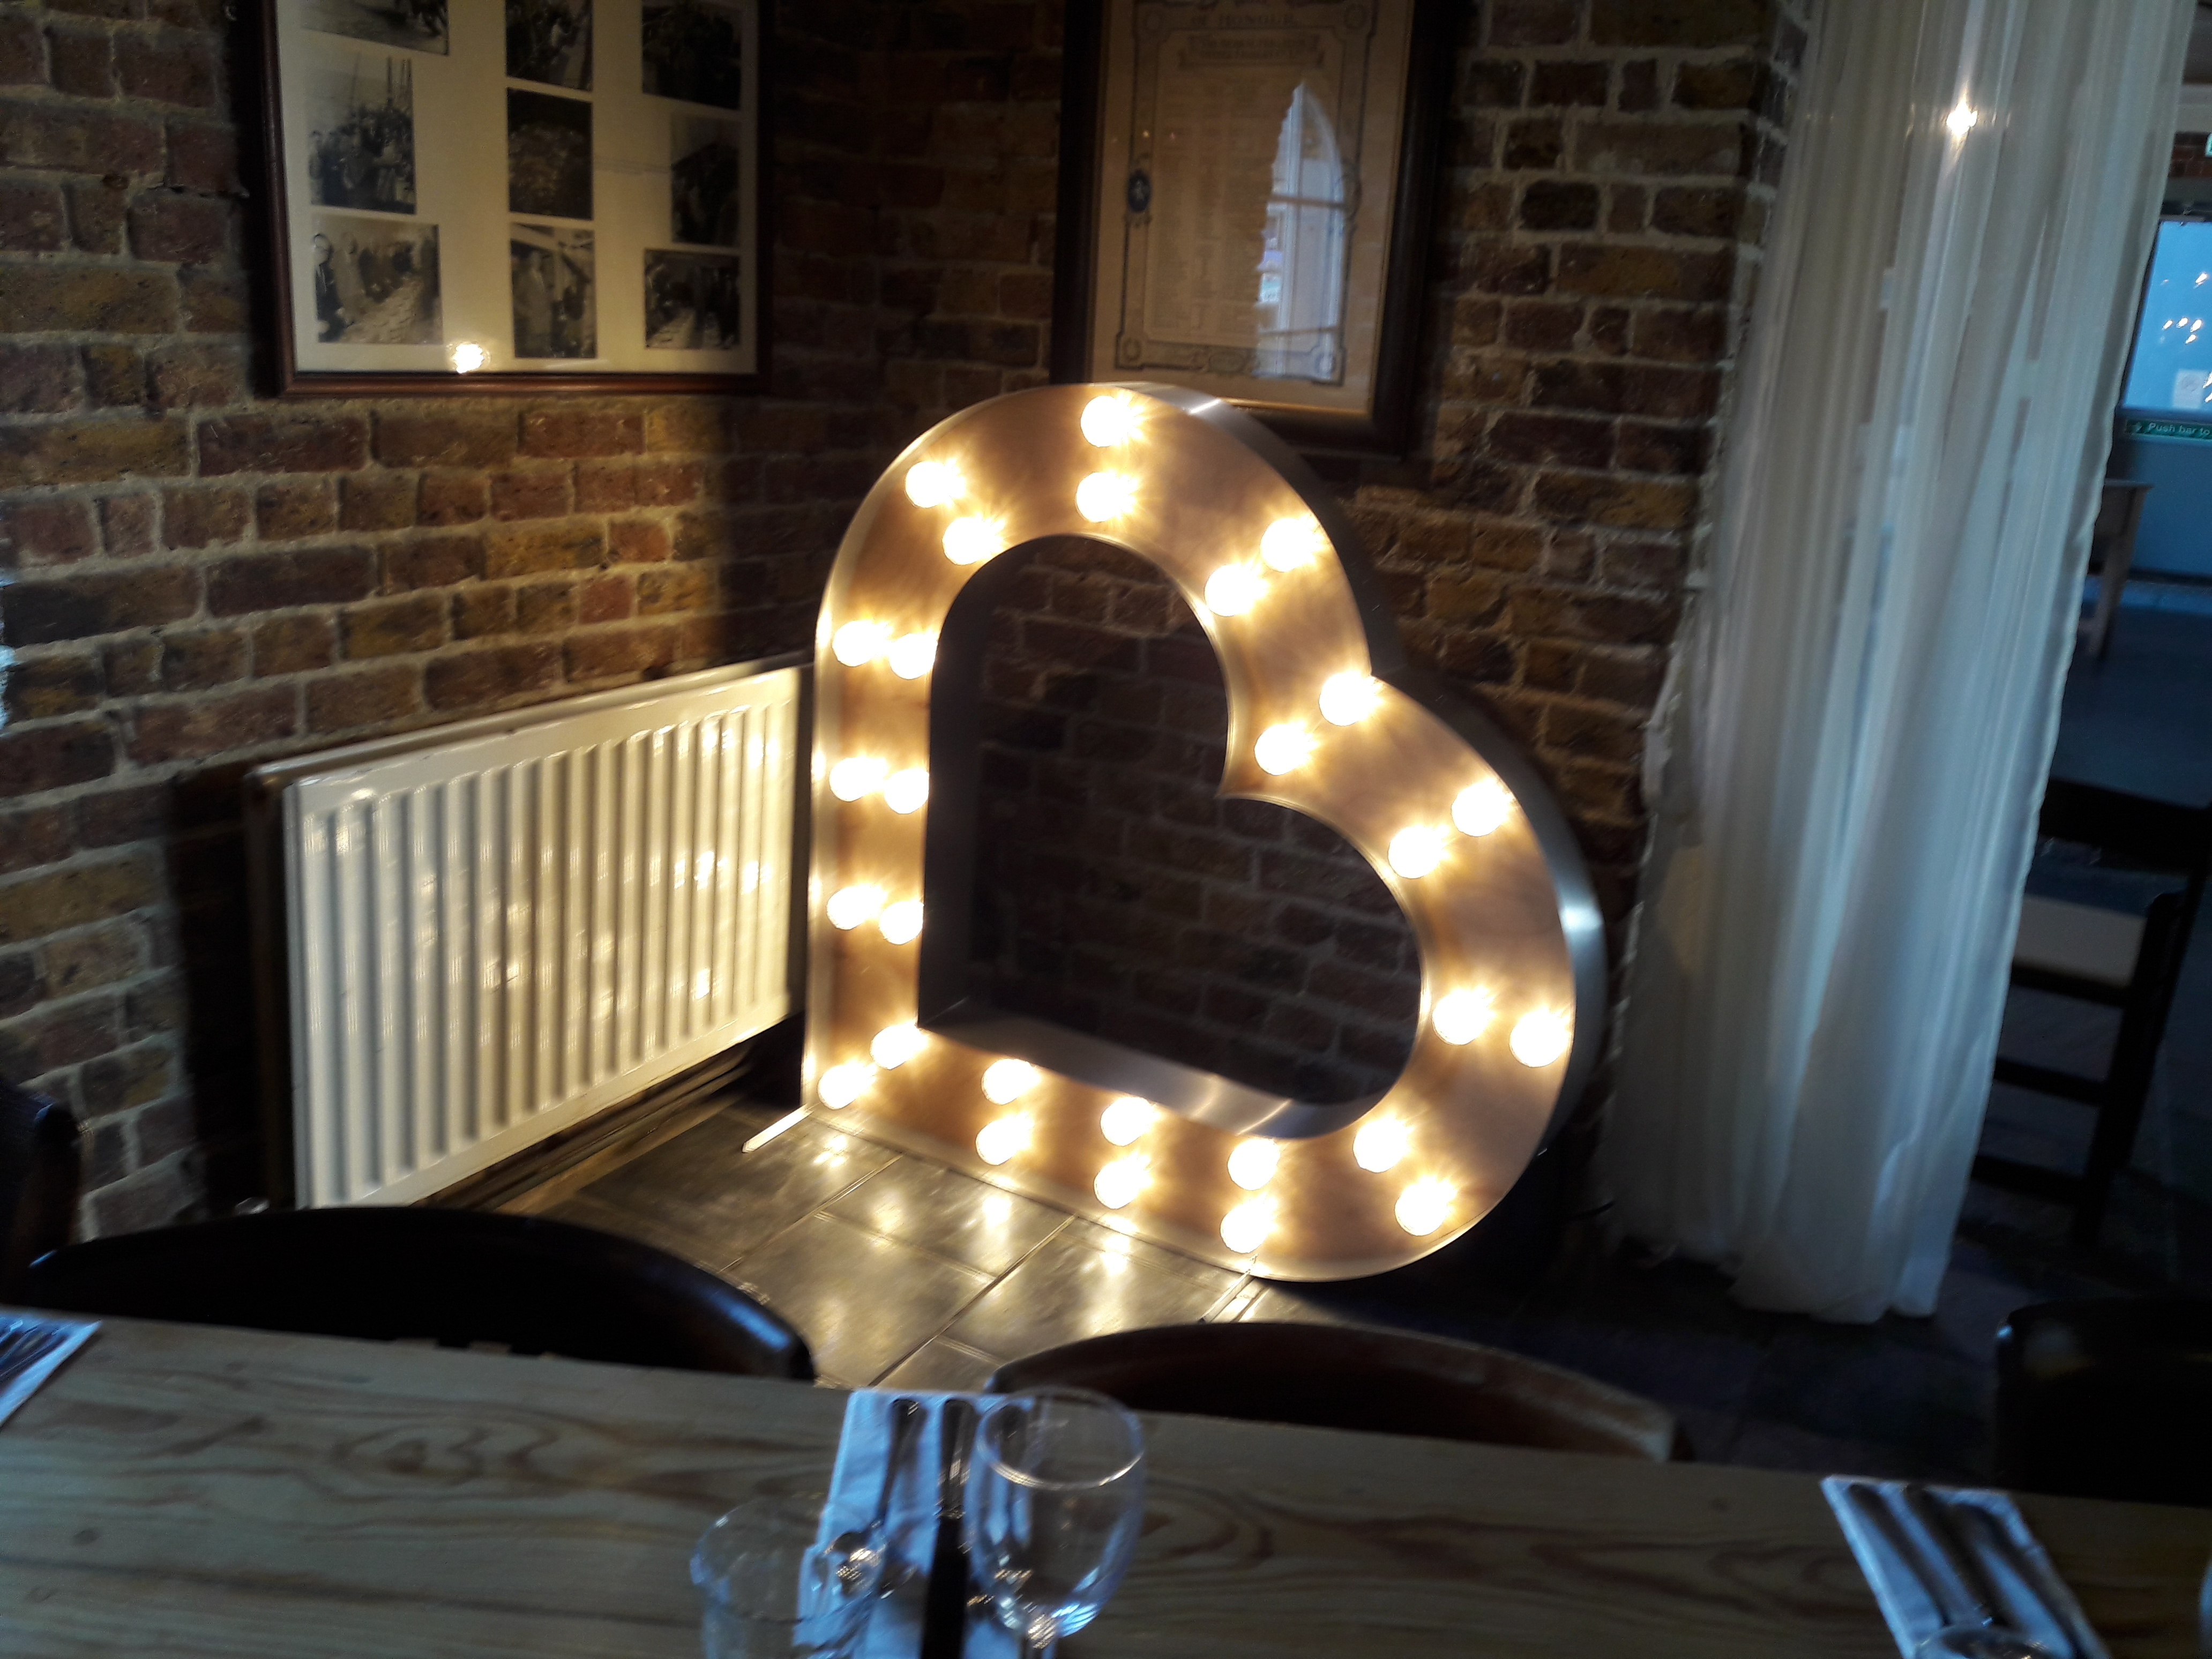 KMS Hire's heart lights for hire